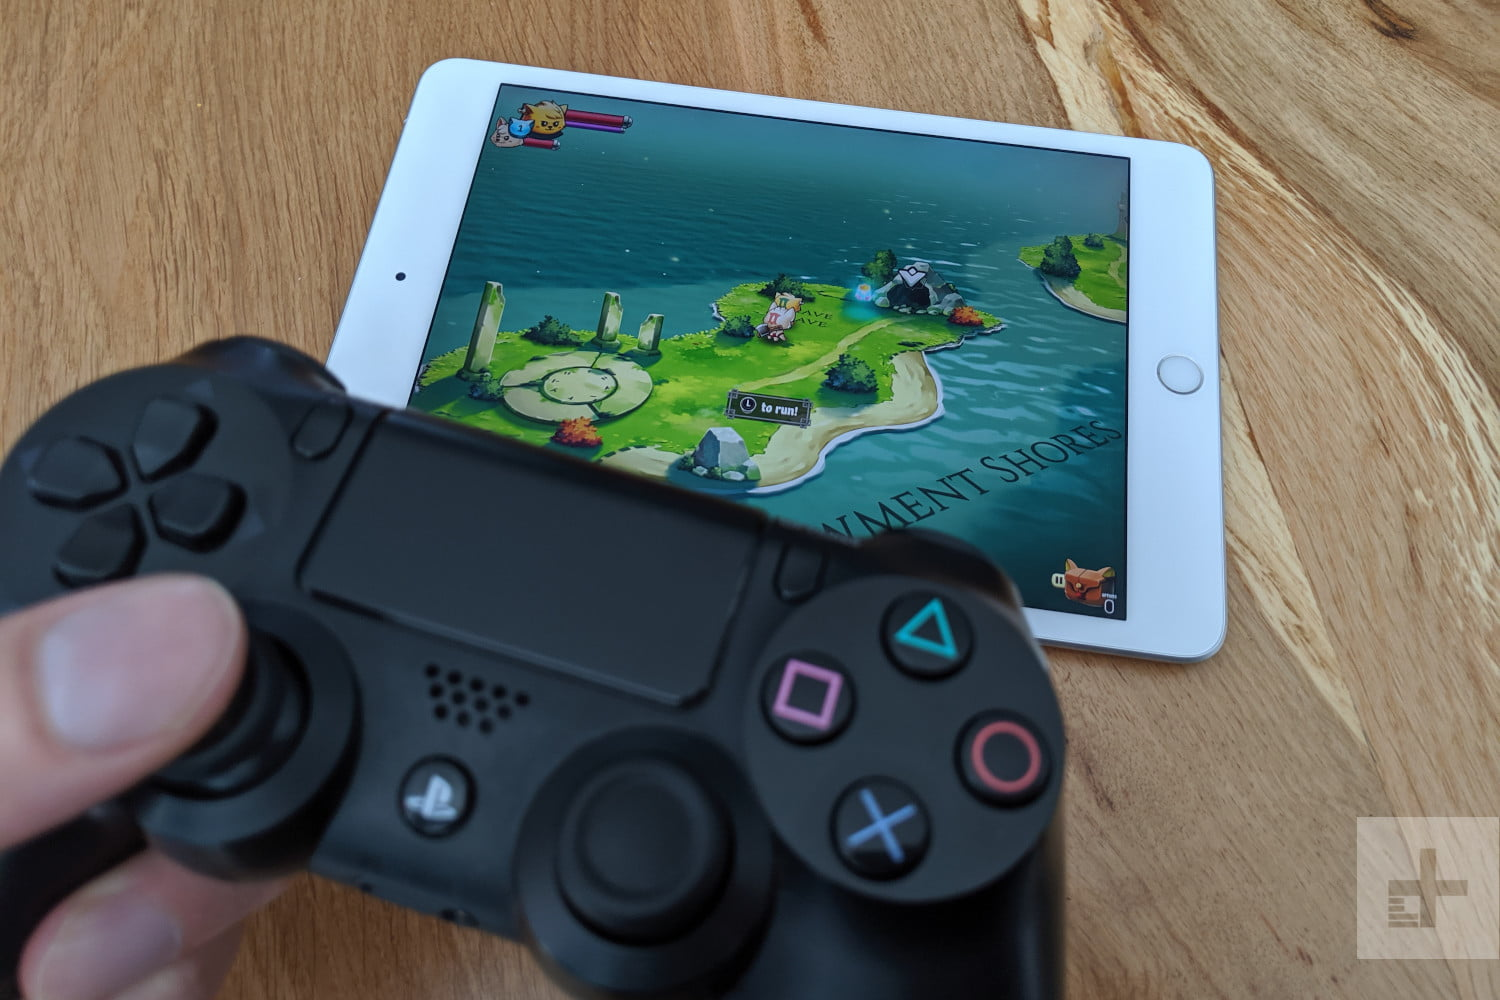 How to connect a PS4 or Xbox game controller to your iPhone or iPad